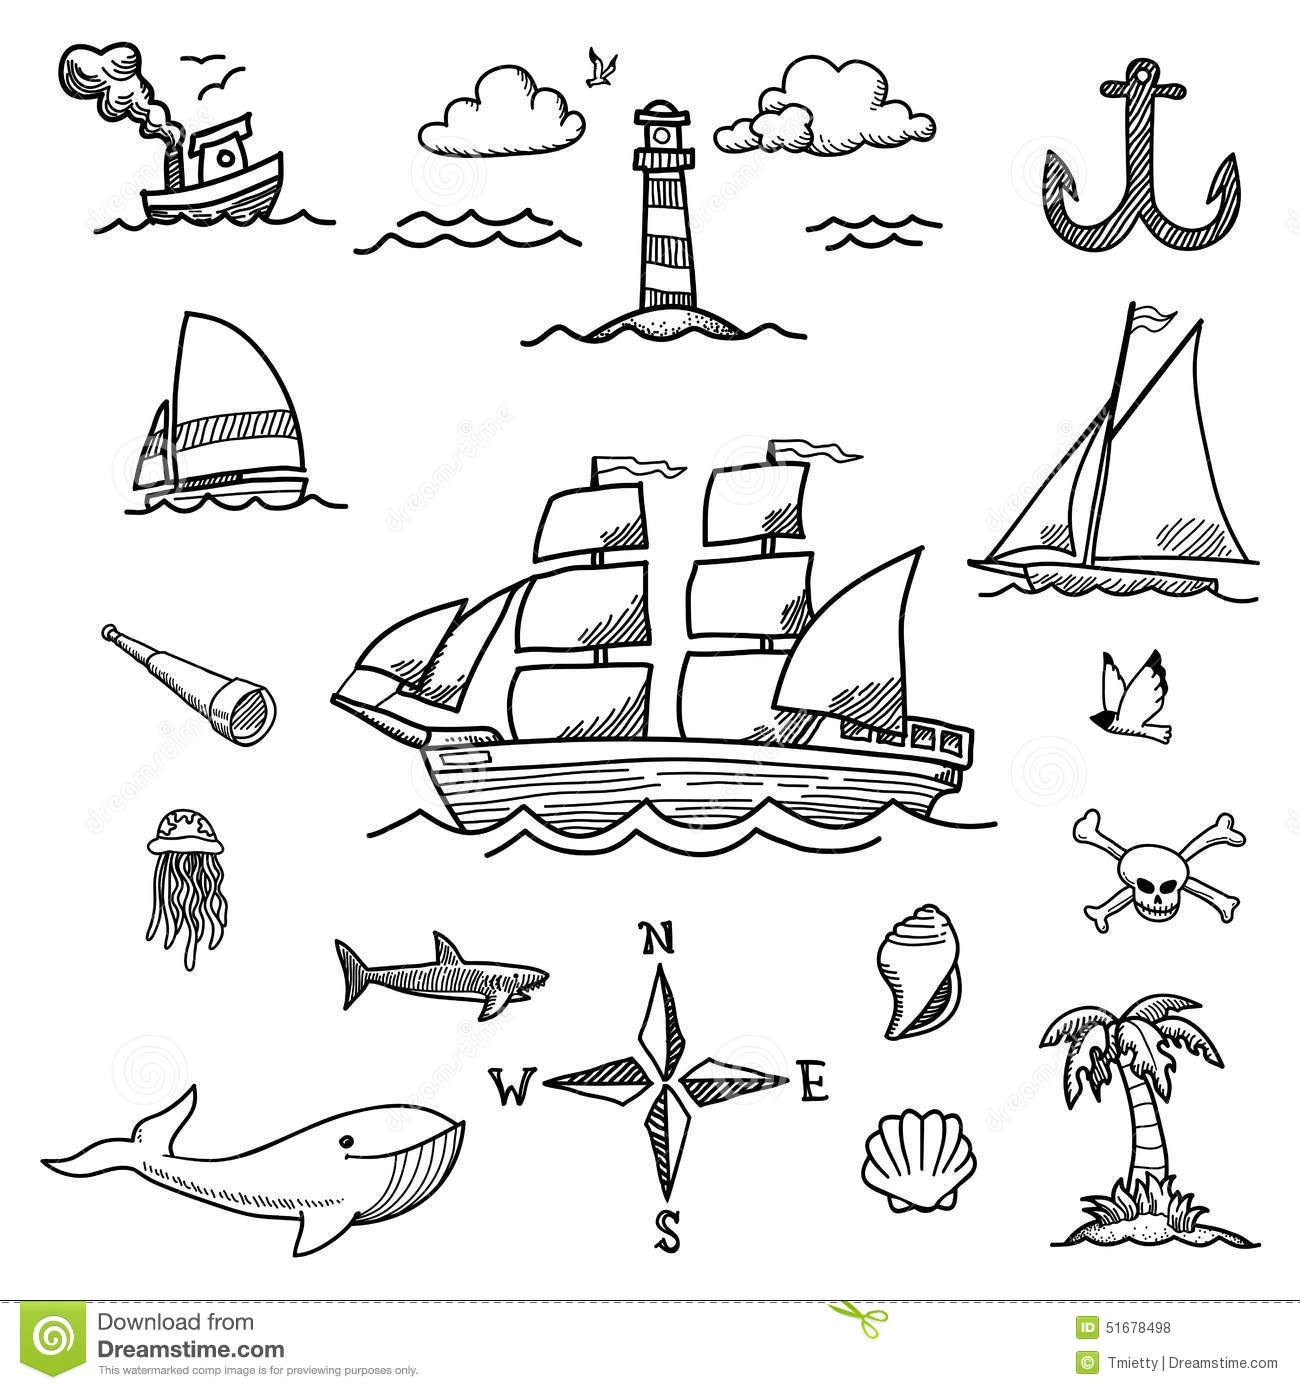 Boat And Sea Hand-drawn Doodles Stock Vector - Image: 51678498